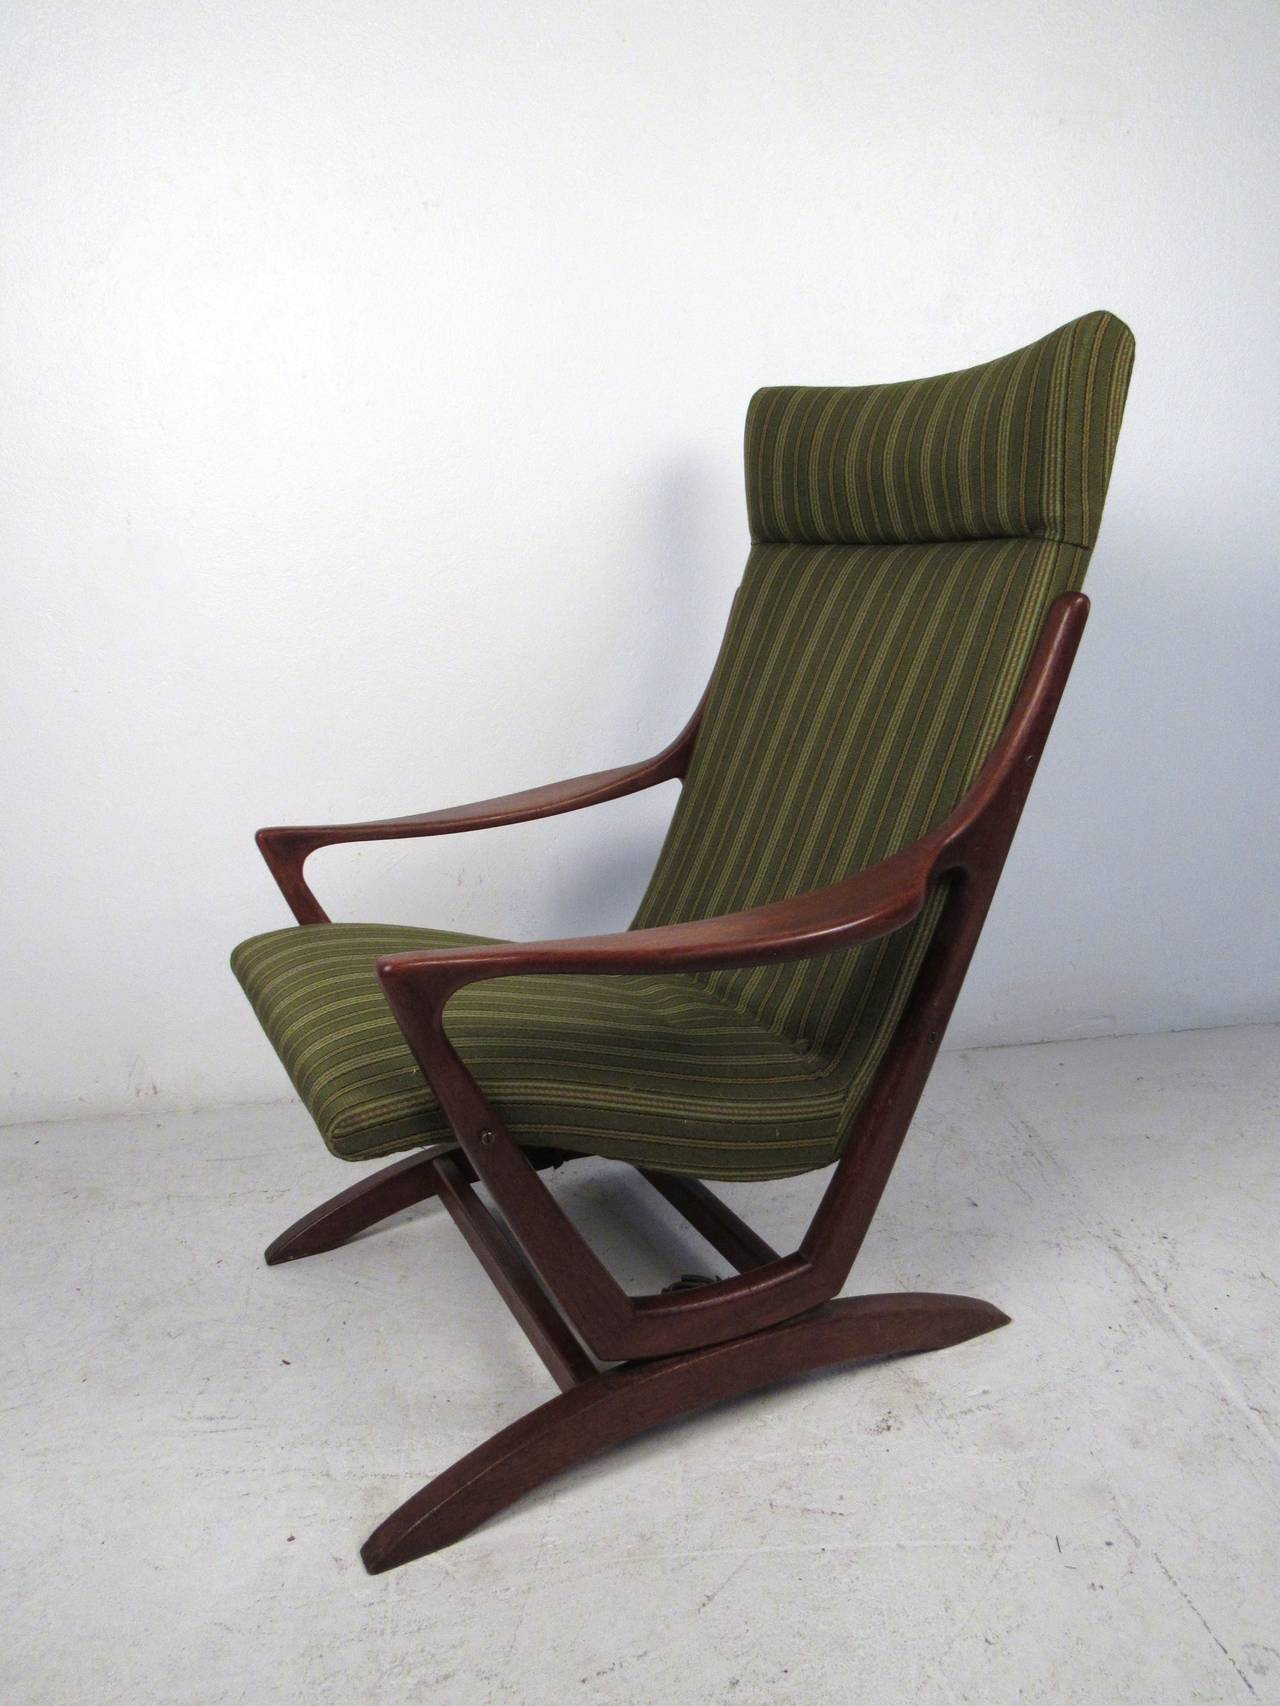 This mid-century modern rocking chair in the style of Adrian Pearsall features a solid walnut construction and vintage upholstery which offers a modern flare and comfortable seating for any home or office space.  Please confirm item location (NY or